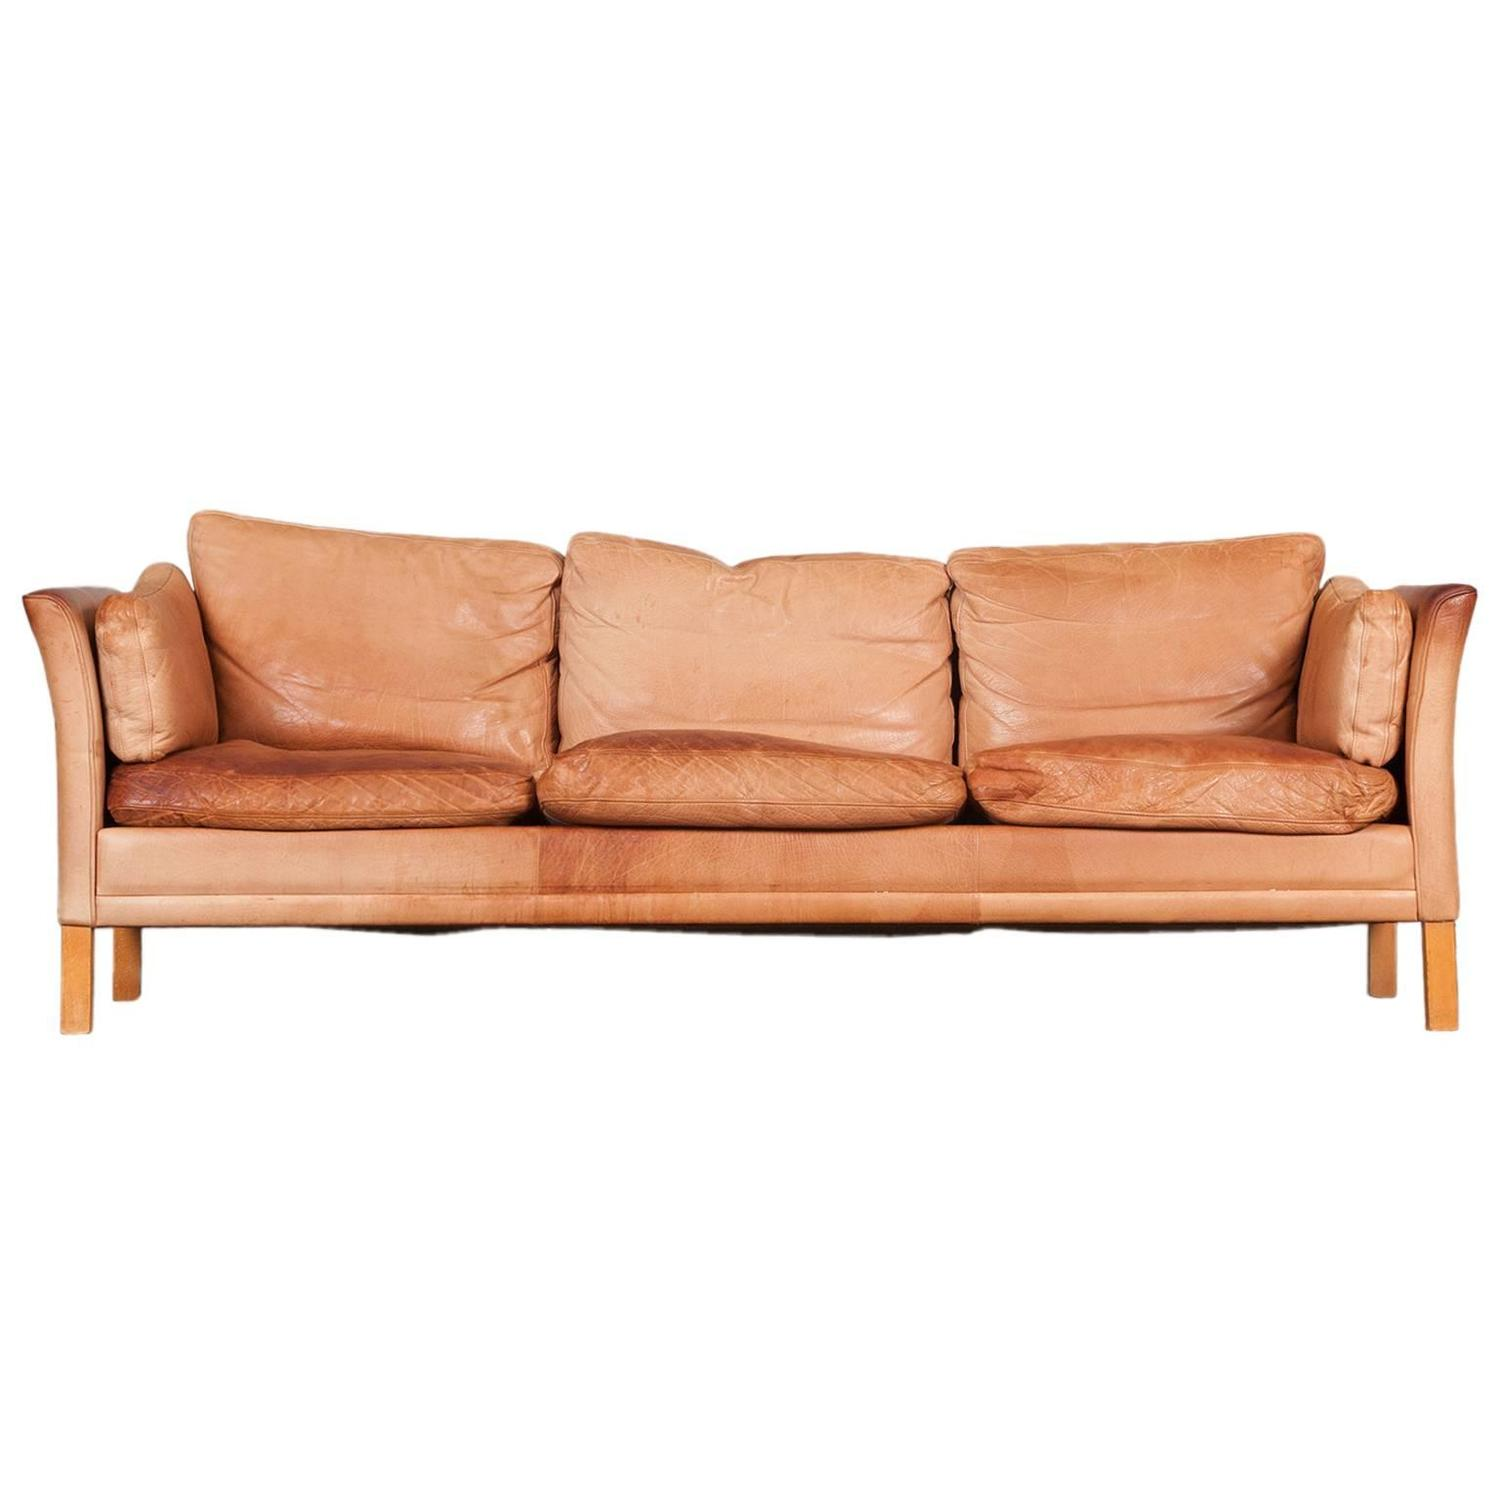 tan leather sofa bed australia arrange sectional small room danish three seater with light 1960s at